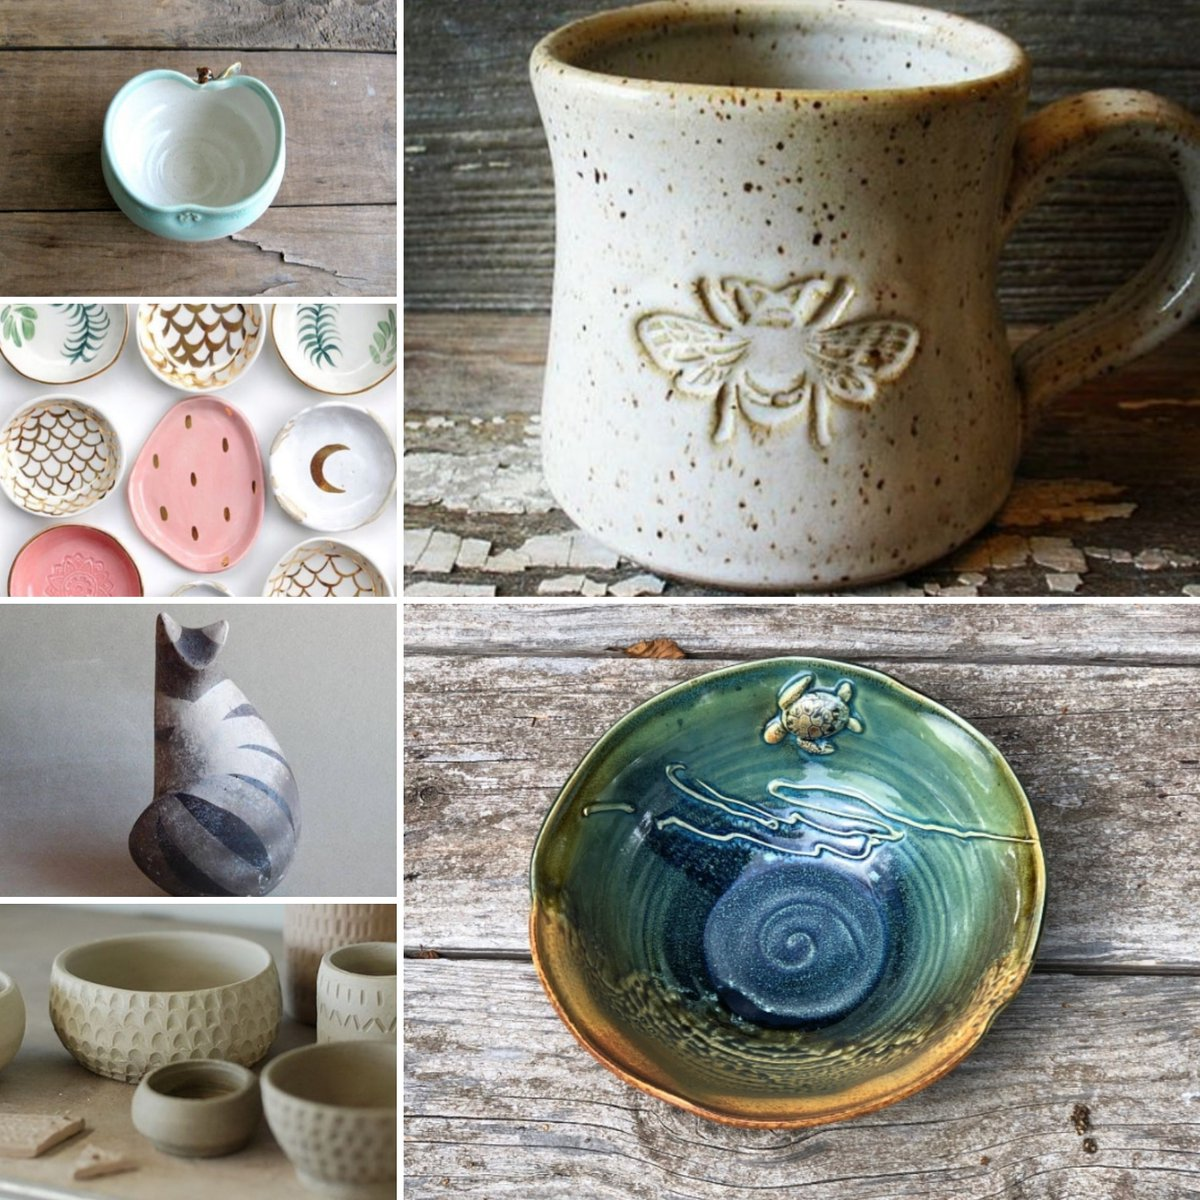 Wed love a local ceramic artist to join us this year! If you specialise in handmade items we have spaces available from as little as £15 pcm plus 10% commission